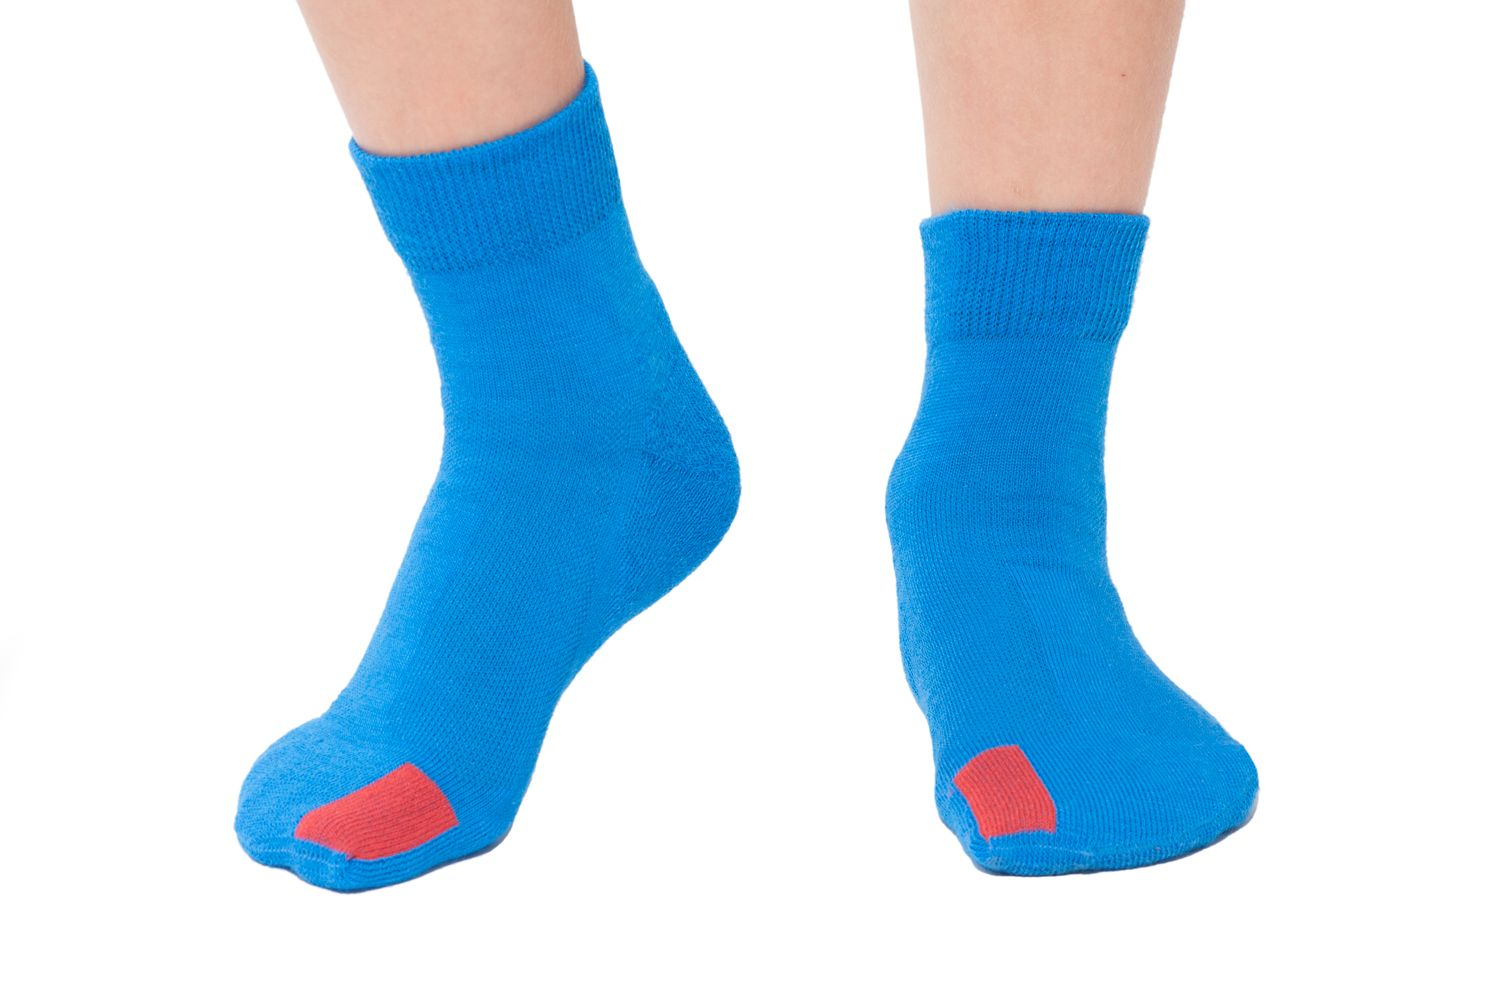 plus12socks kids feet wearing blue socks front view